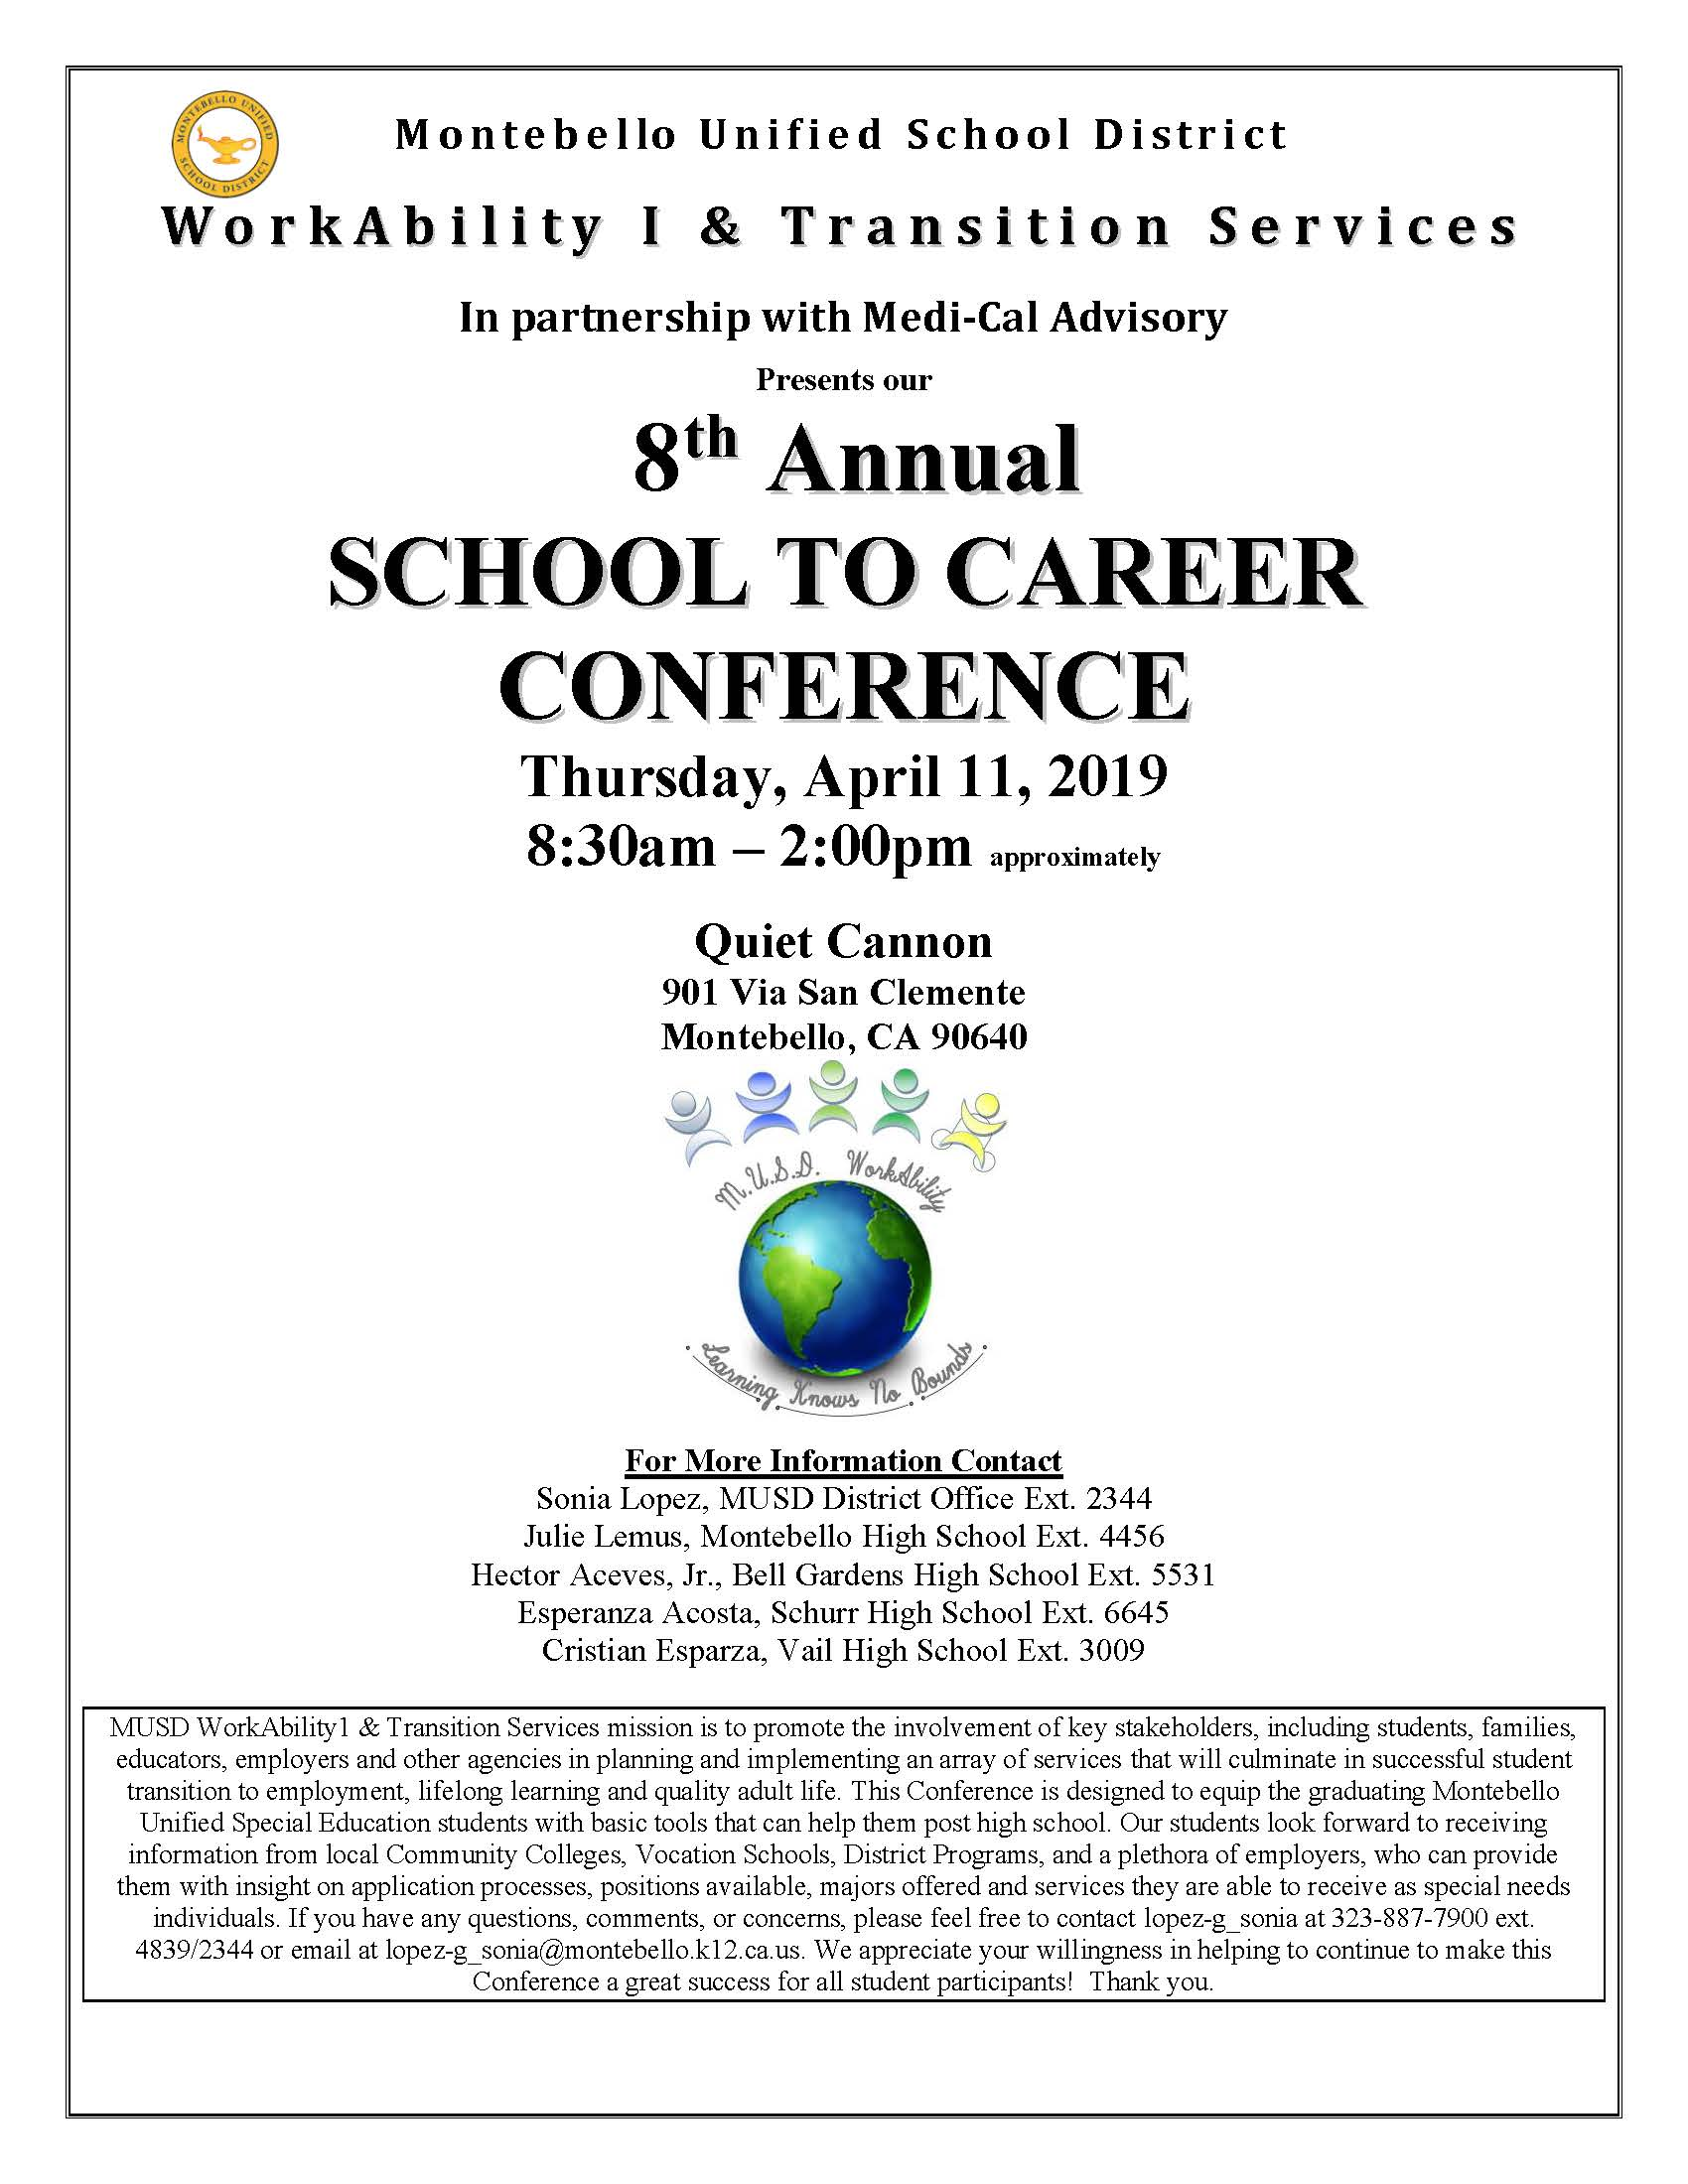 8th Annual School to Career Conference